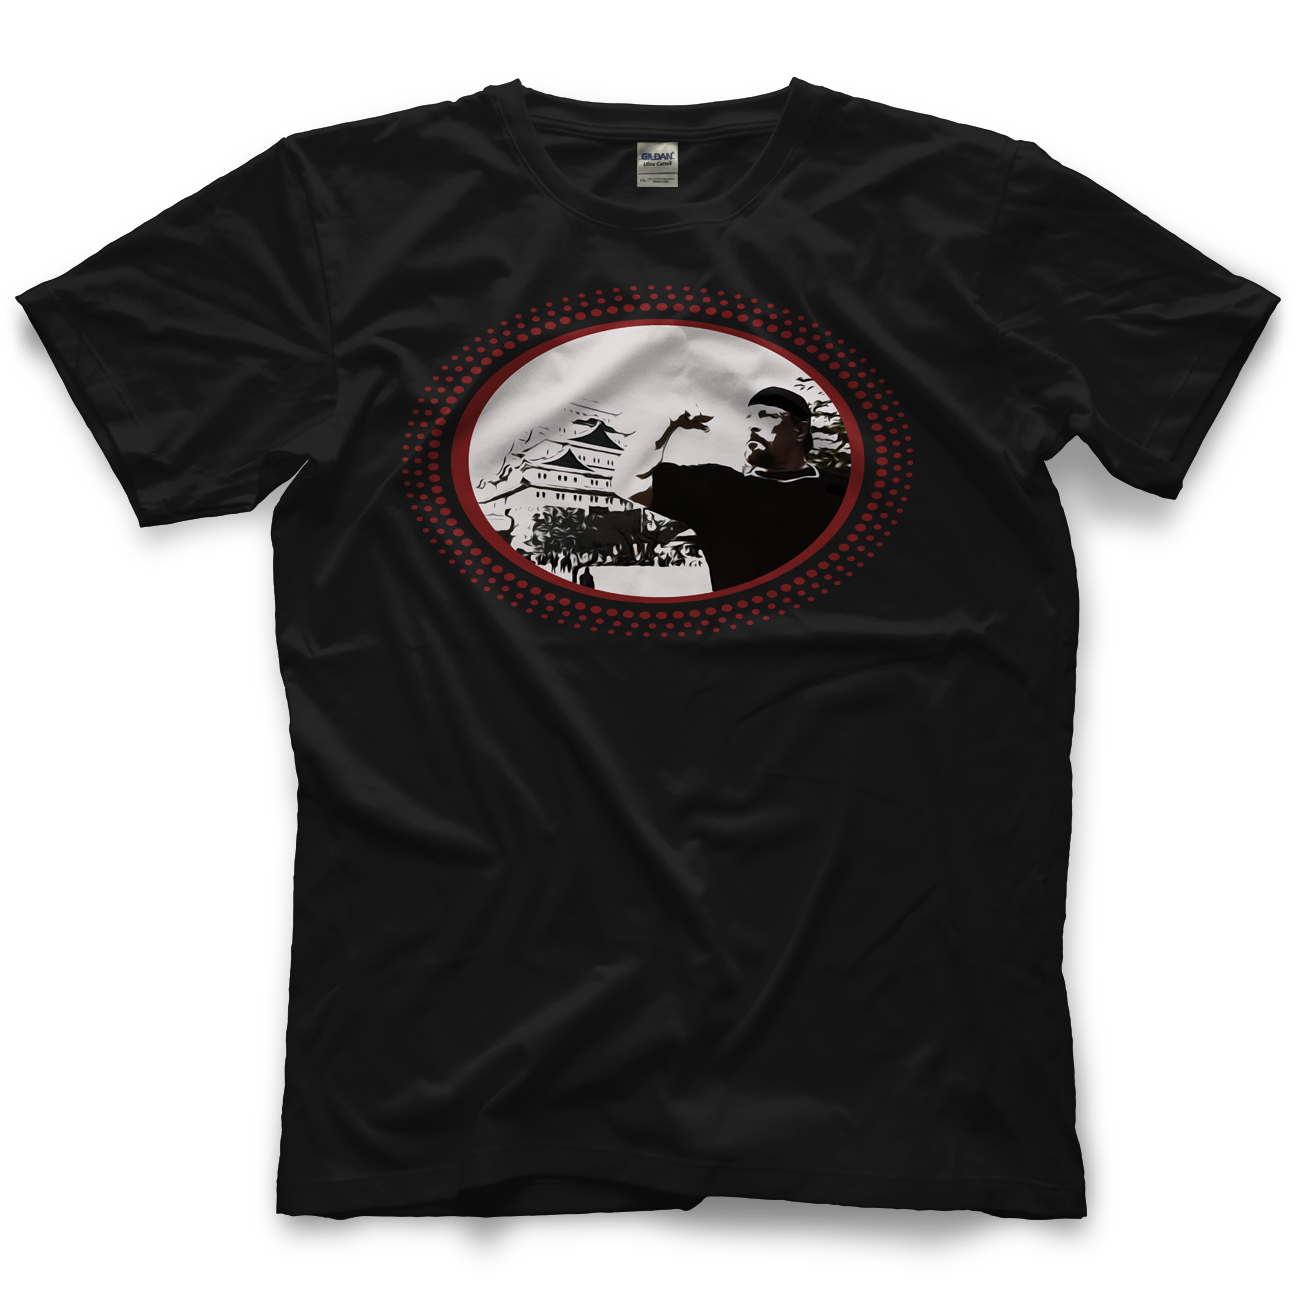 Scott Norton Pumped T-shirt